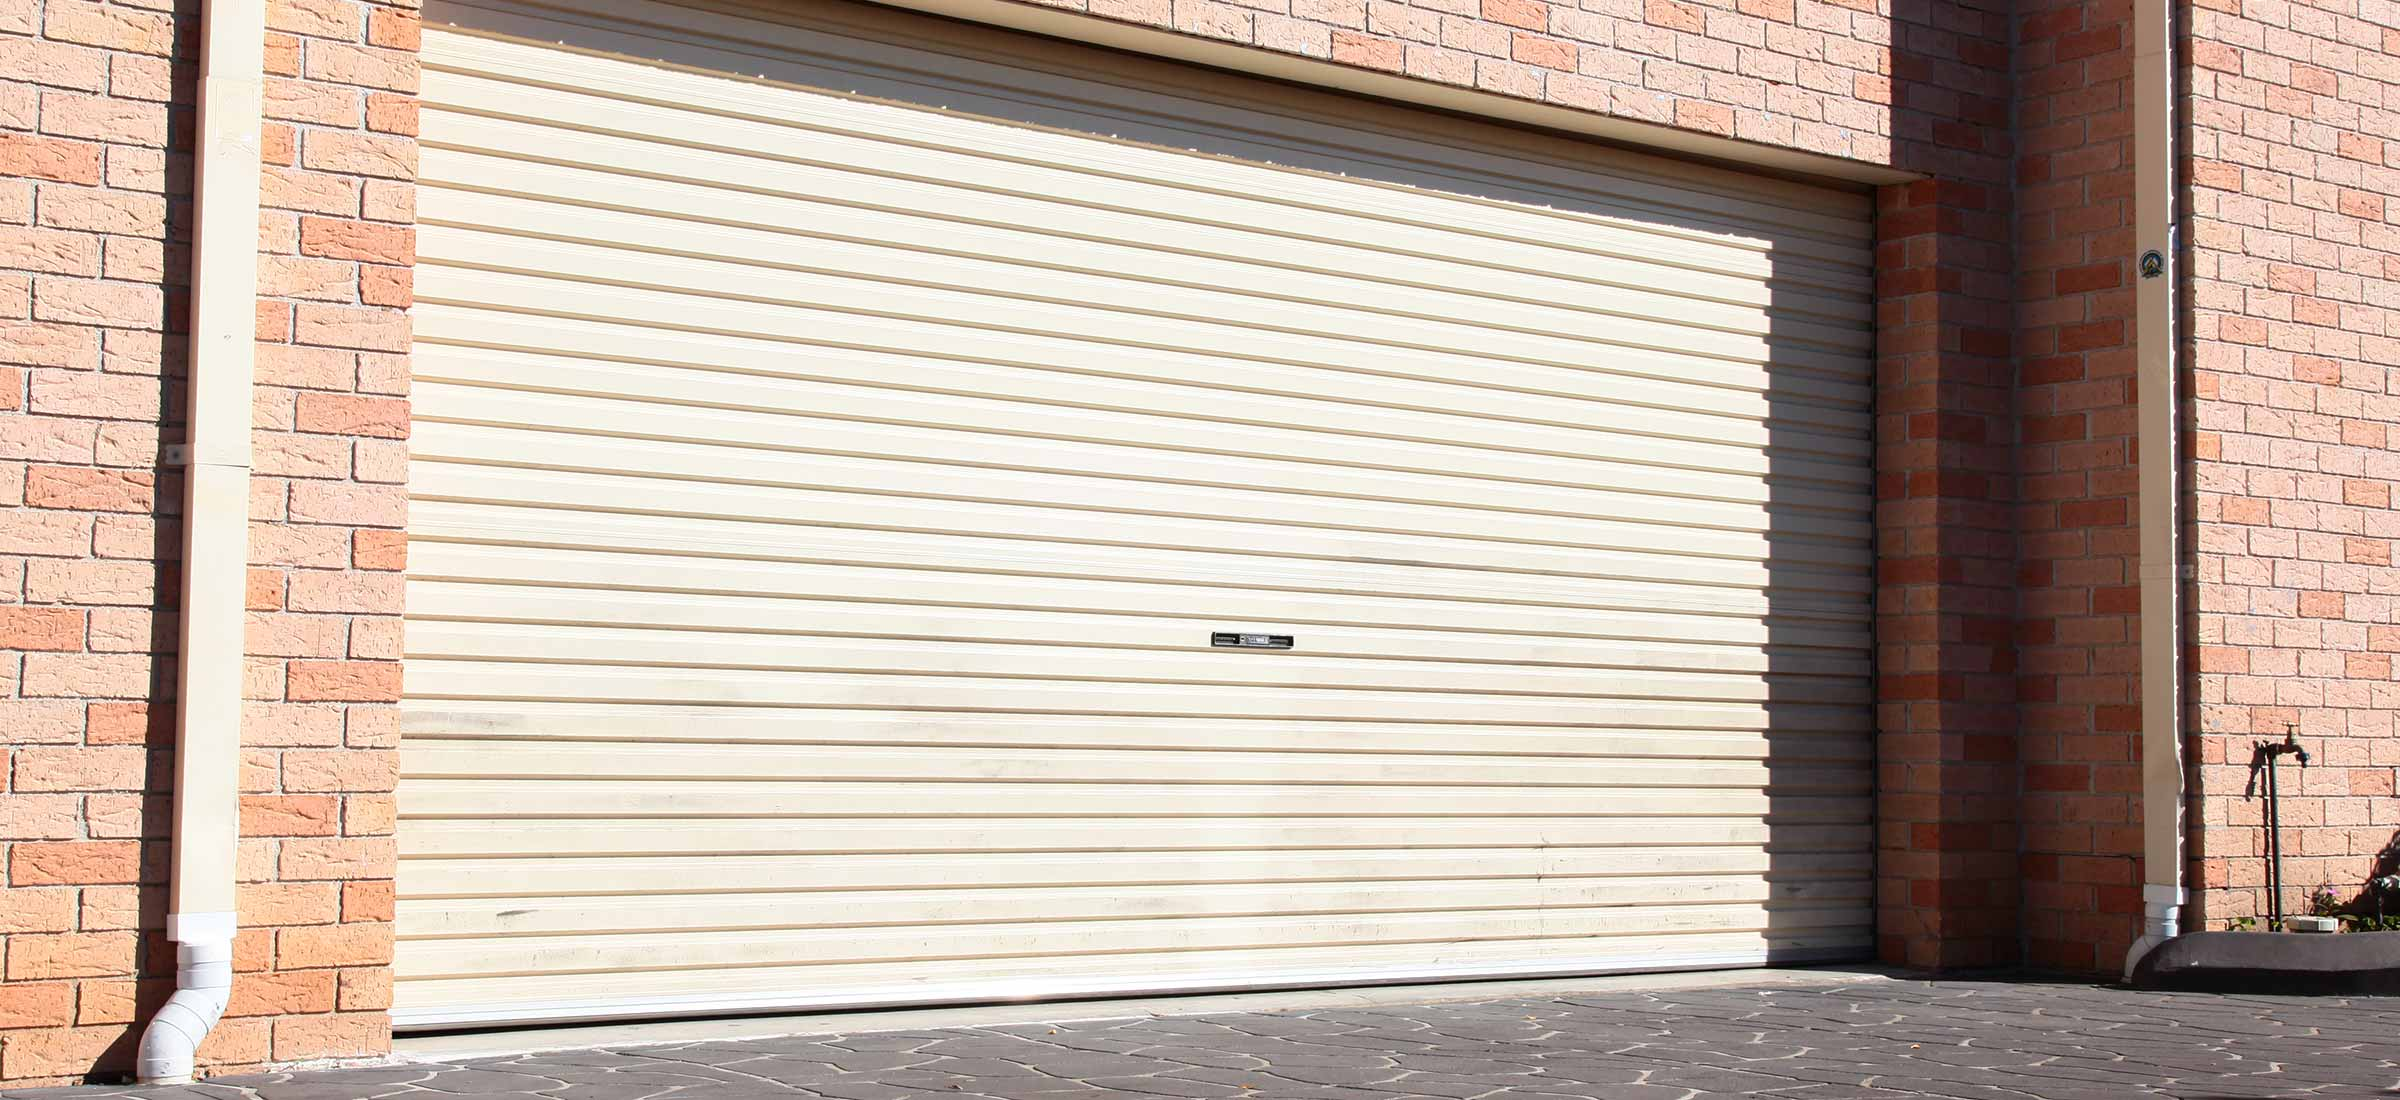 Garage roller door closed